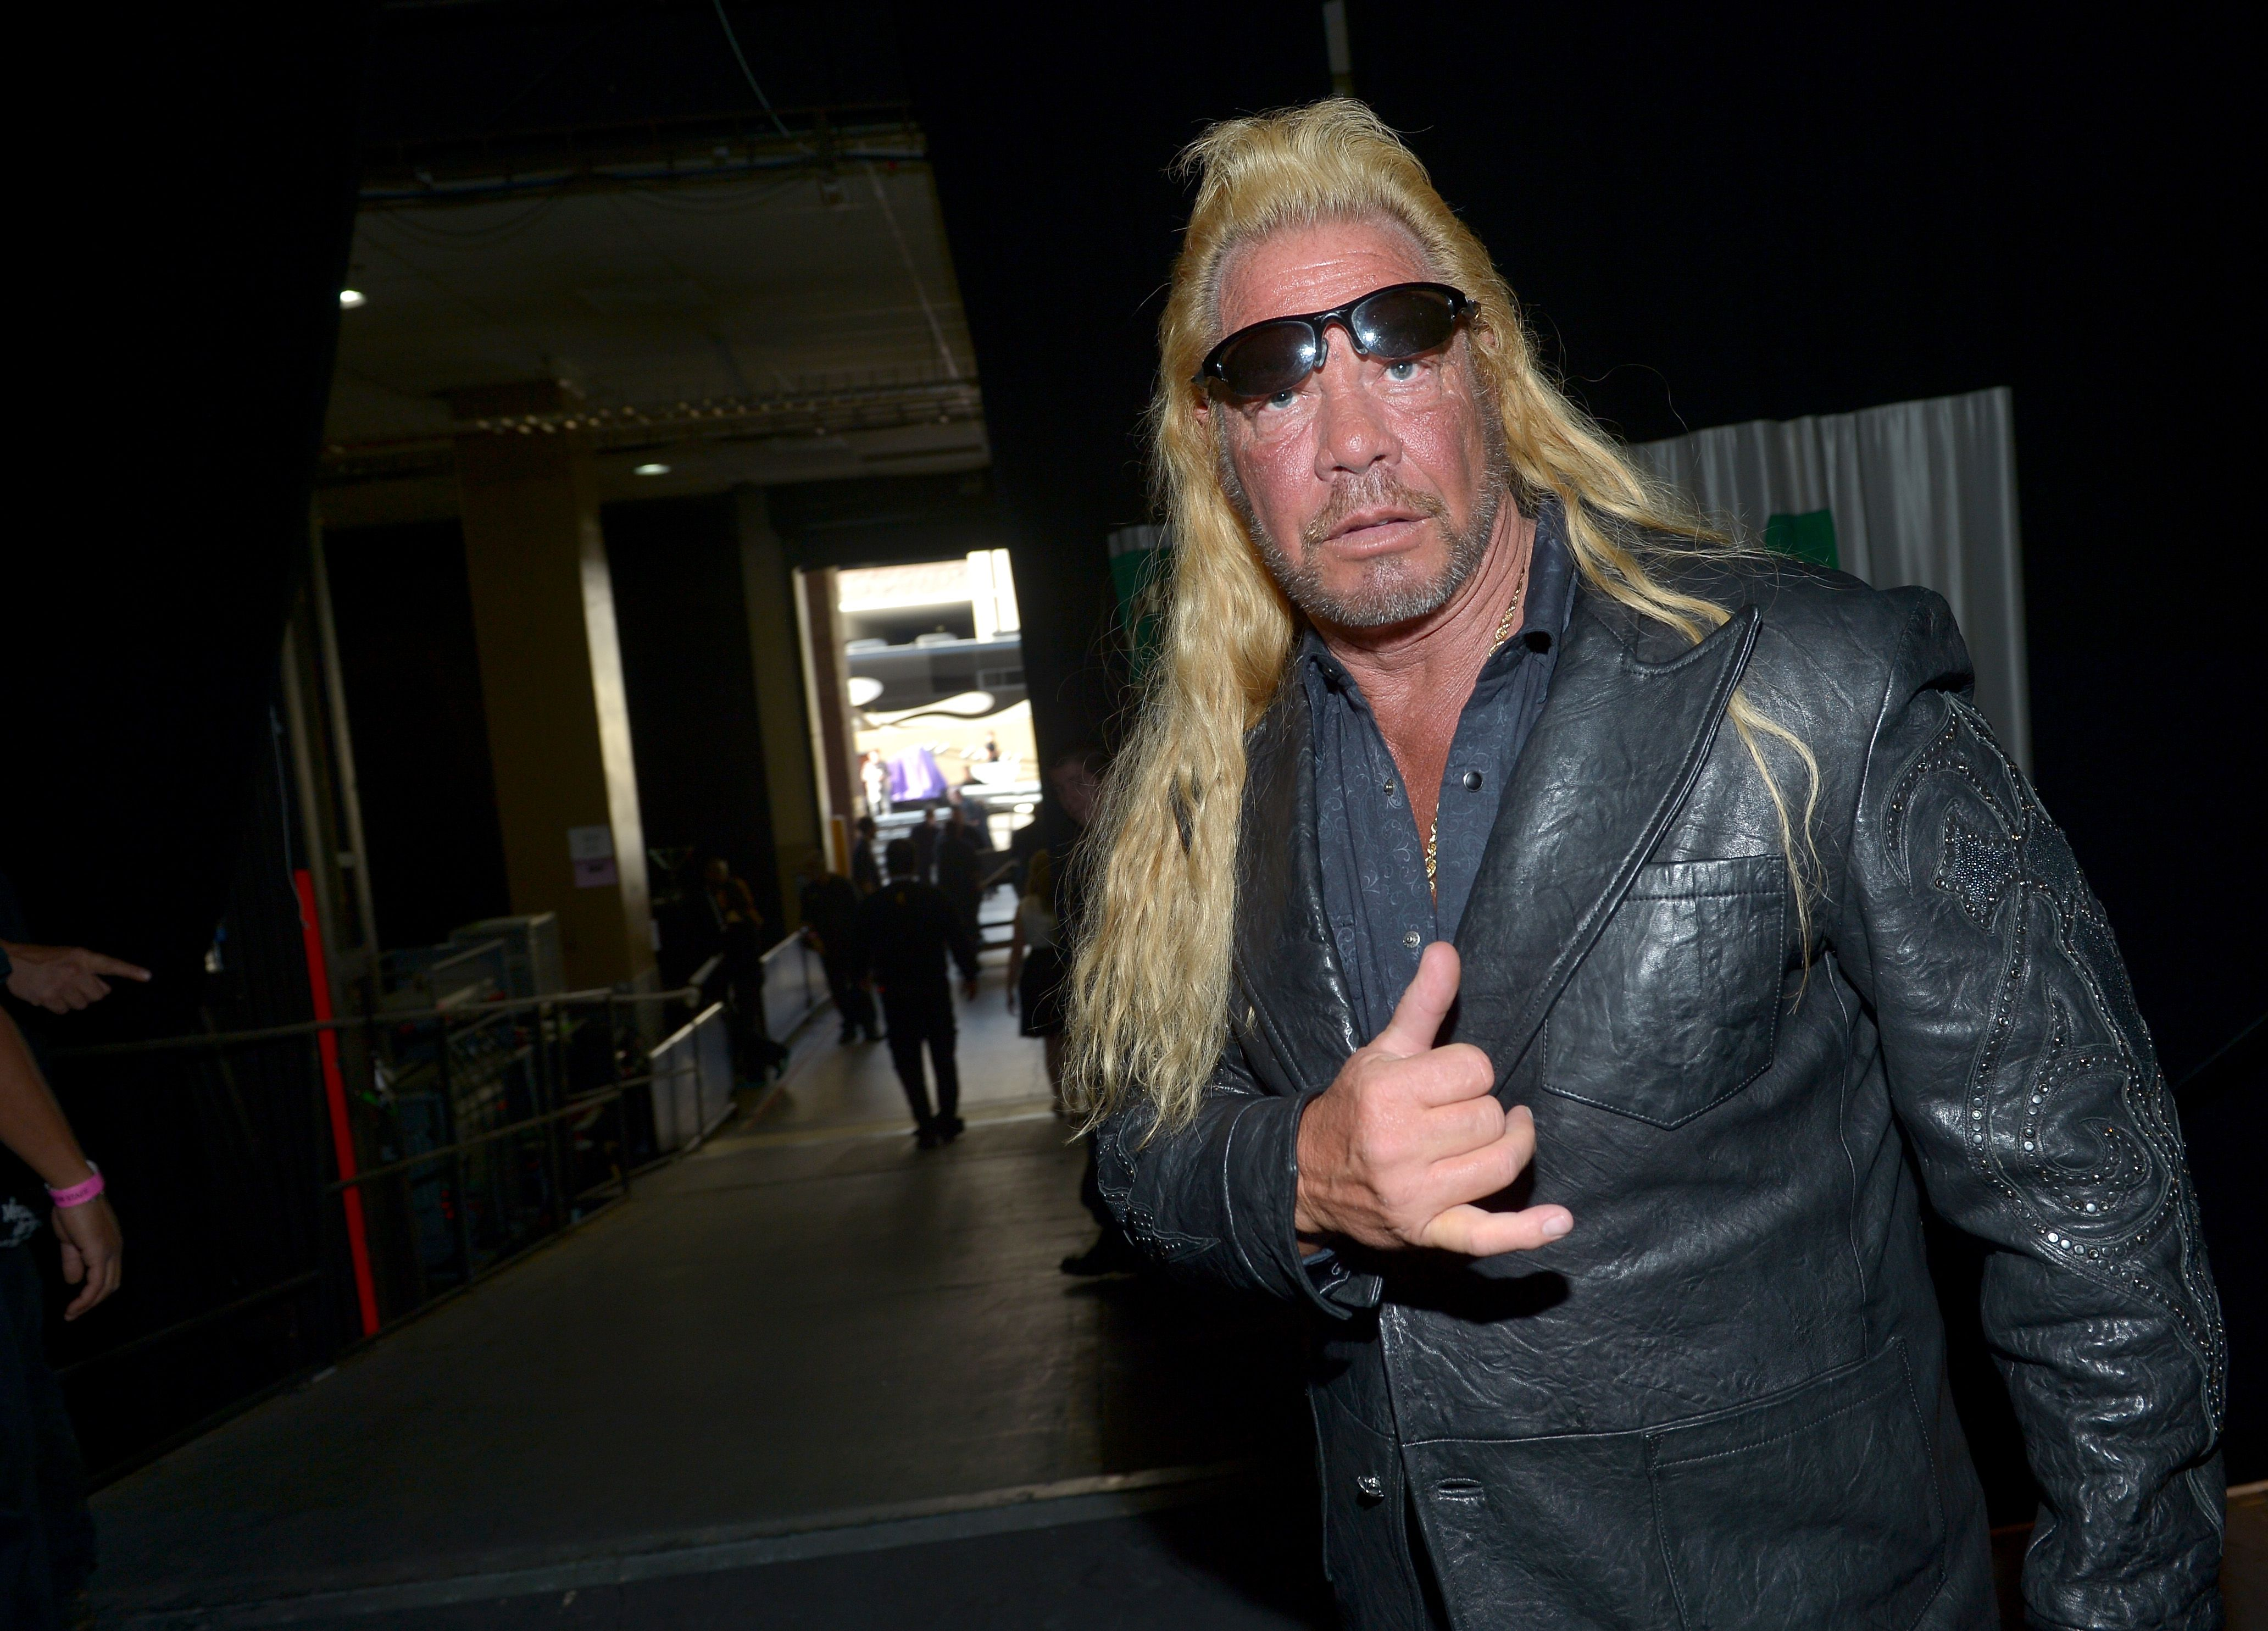 Dog the Bounty Hunter at the 48th Annual Academy of Country Music Awards on April 7, 2013   Photo: Getty Images